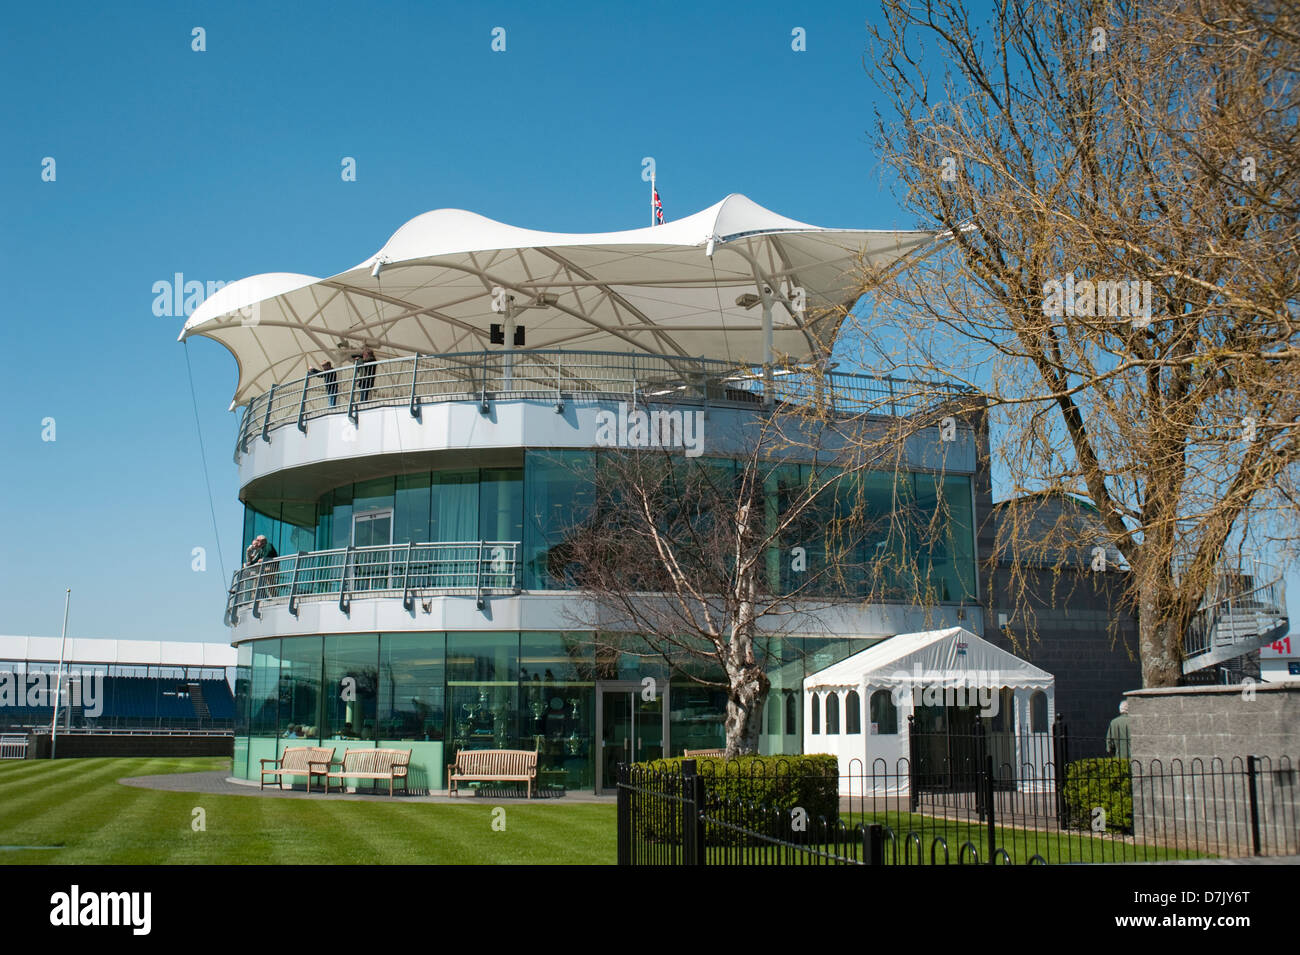 The BDRC Clubhouse at the Silverstone circuit, Northamptonshire,England, UK. - Stock Image